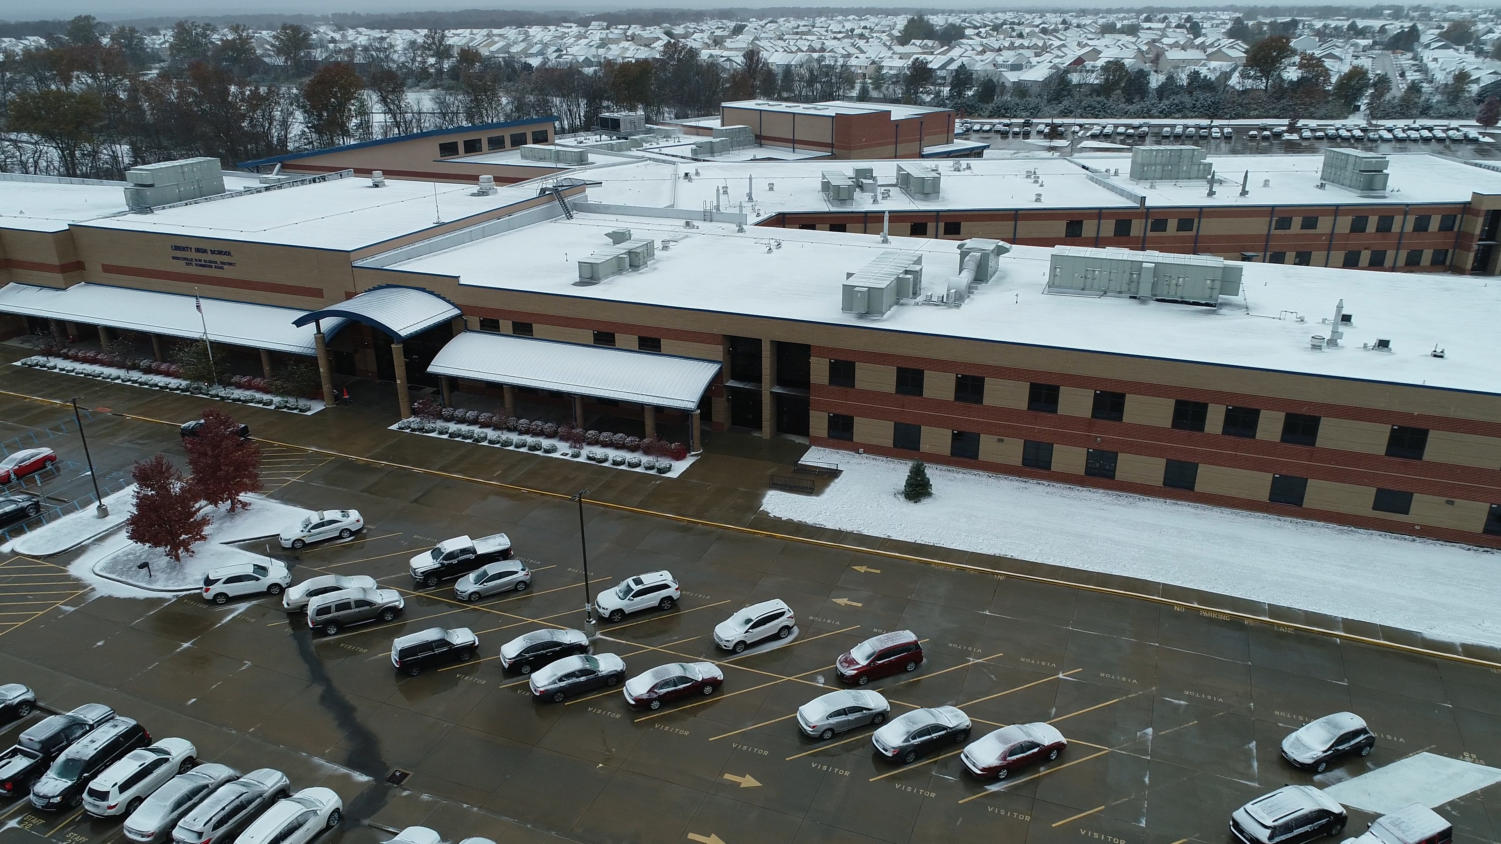 The first snowfall of the school year took place Monday, Nov. 11. Poor road conditions led to the district calling for a snow day on Tuesday.